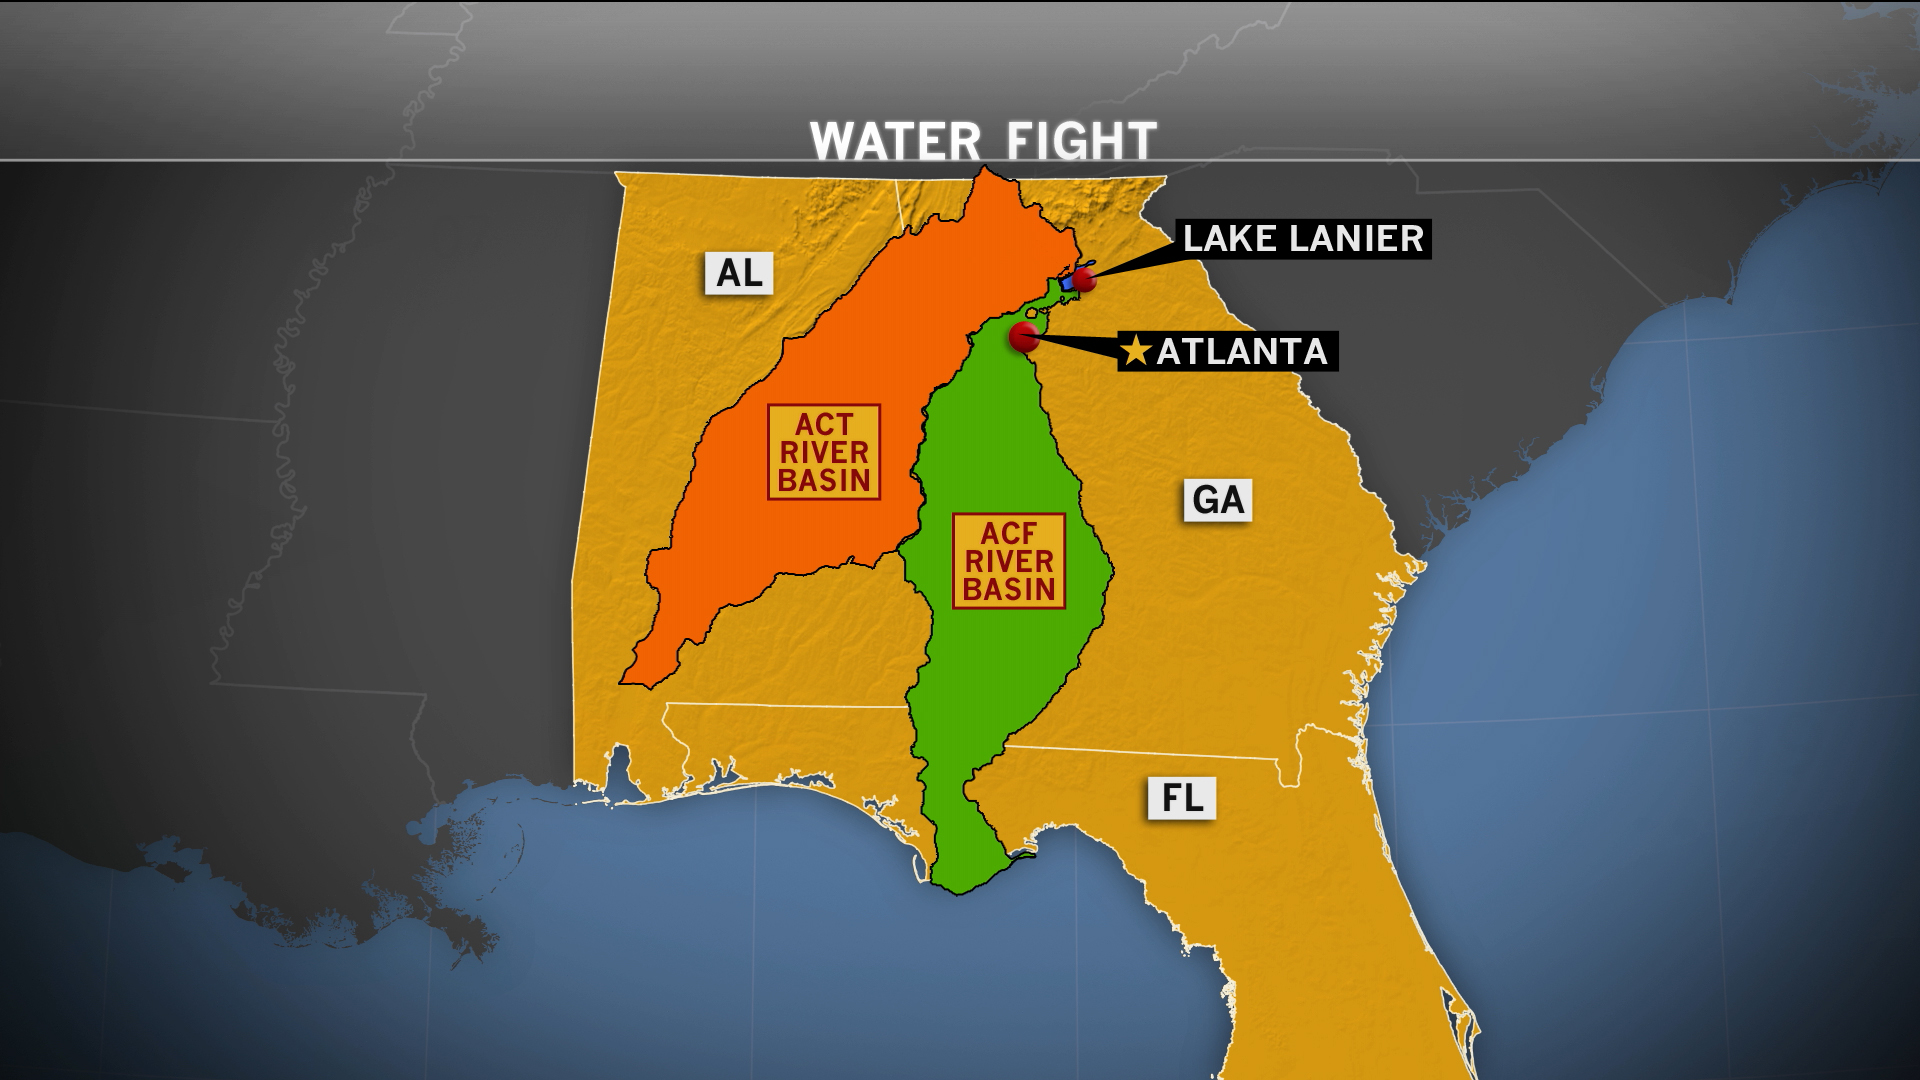 A war over water in the South